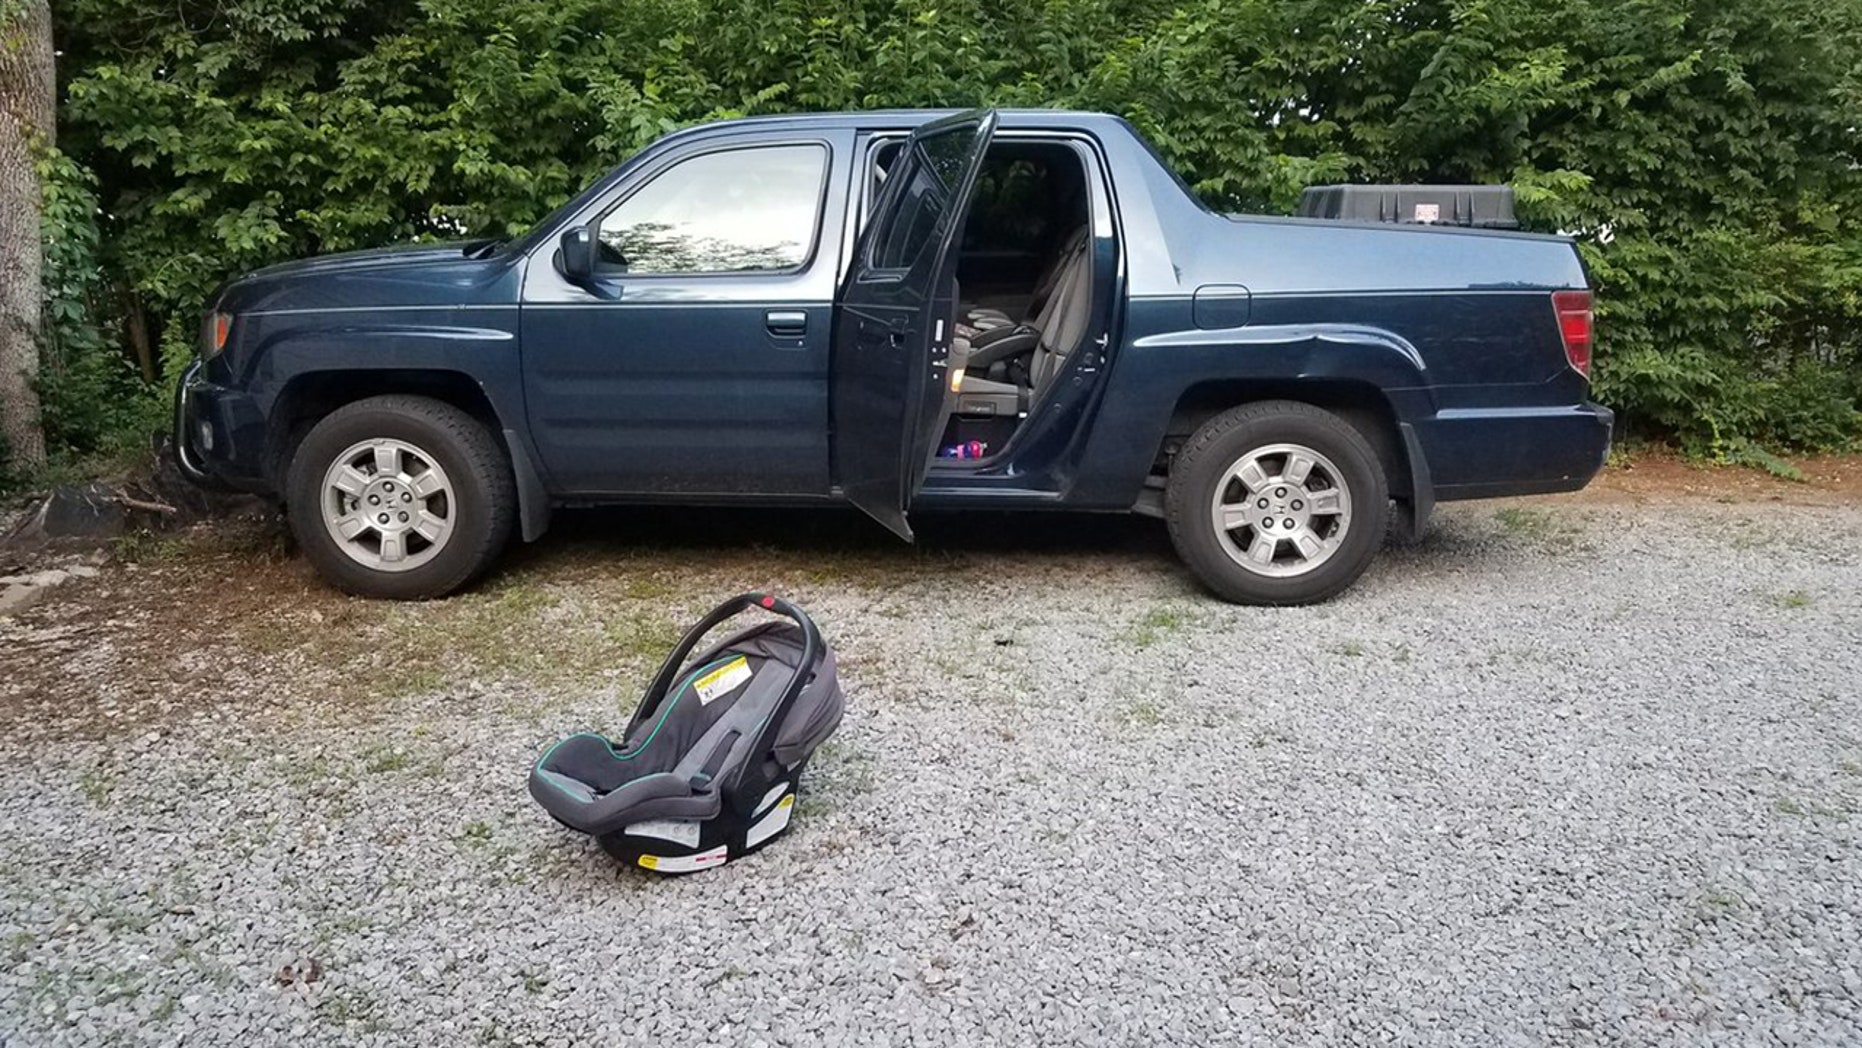 A 1-year-old girl in Tennessee died after being left inside a hot pickup truck all day Wednesday, police said.